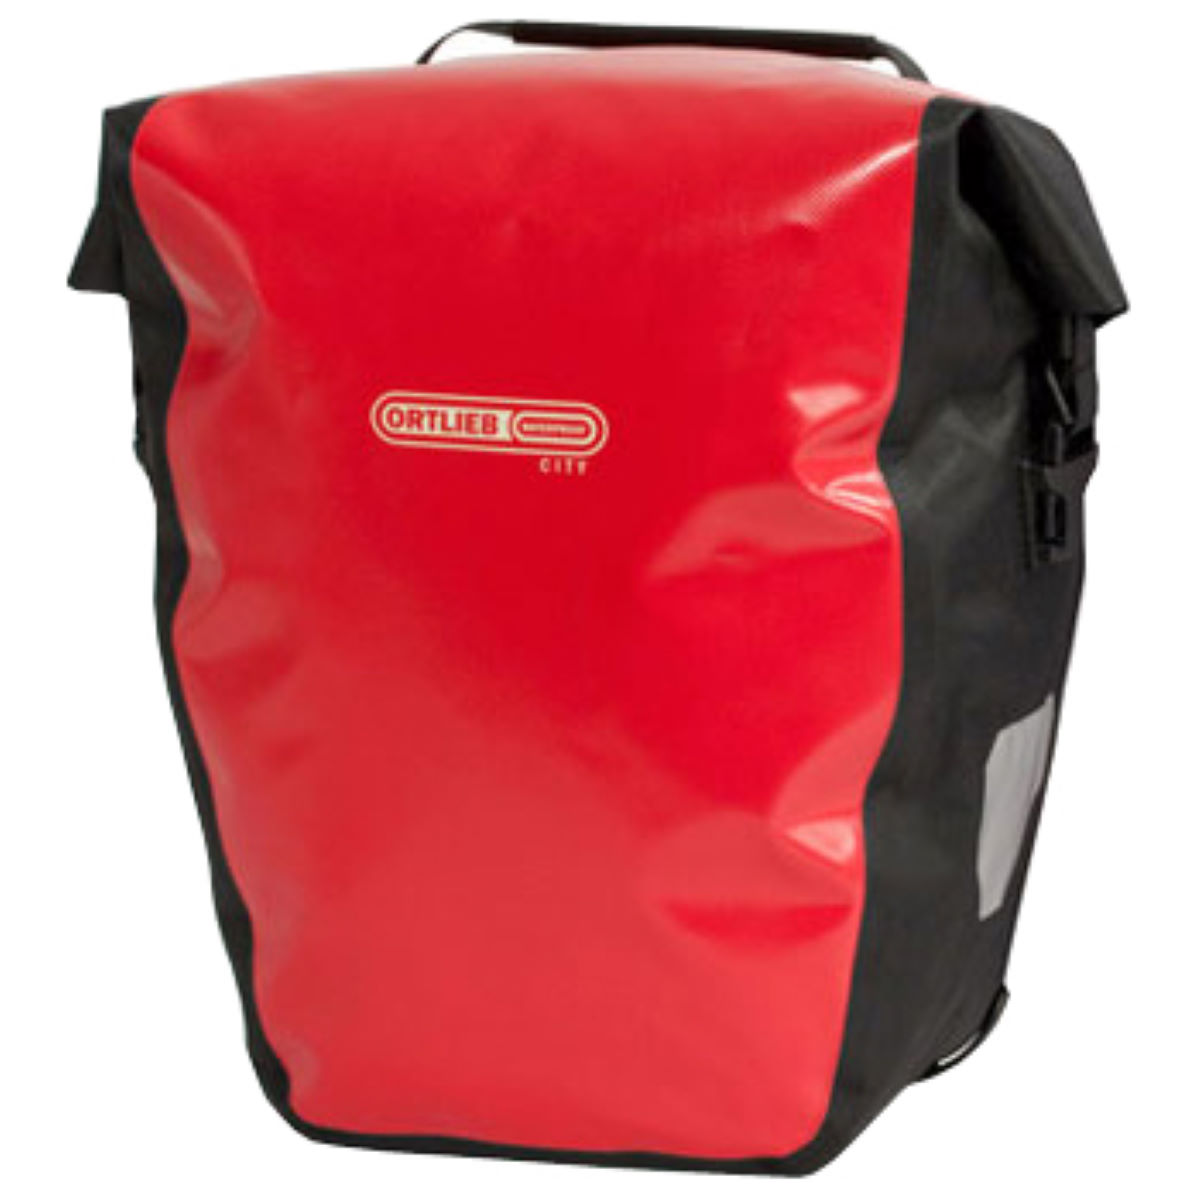 Ortlieb Back Roller City Panniers